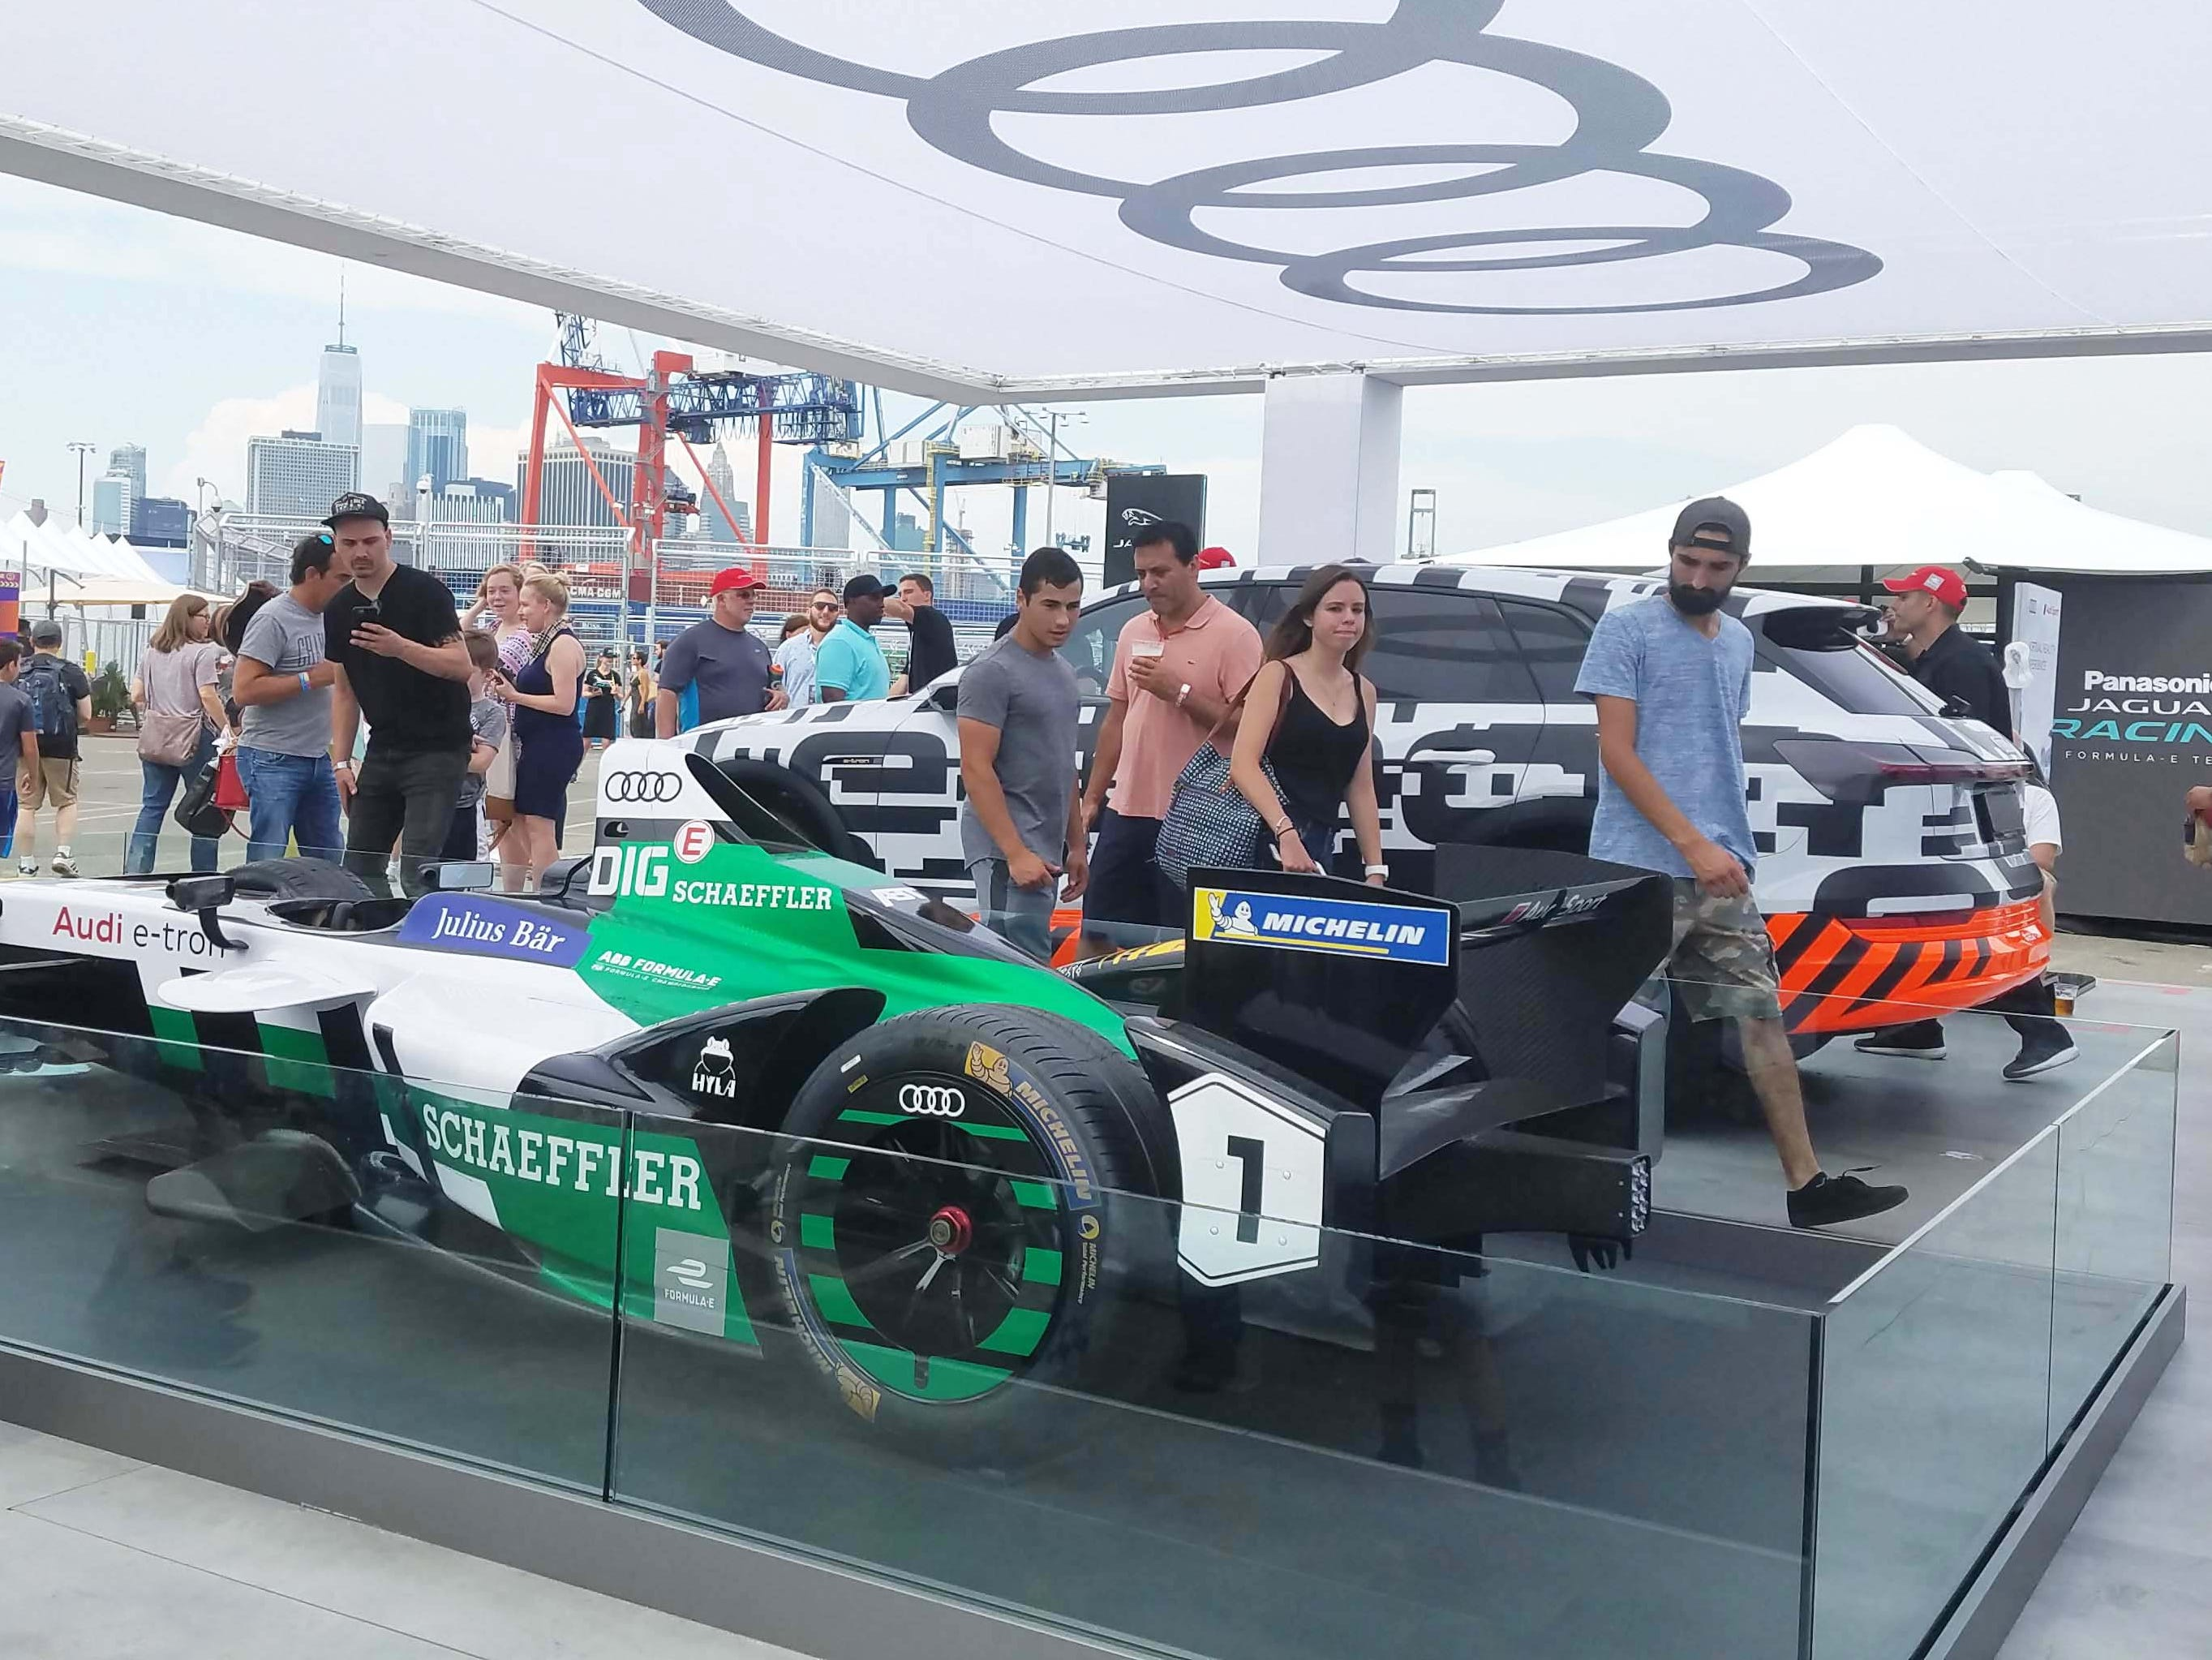 Manufacturers use Formula E to show off their EV tech. Here a fan poses in the fan zone in front of Audi's FE race car — and an Audi e-Trom EV SUV.